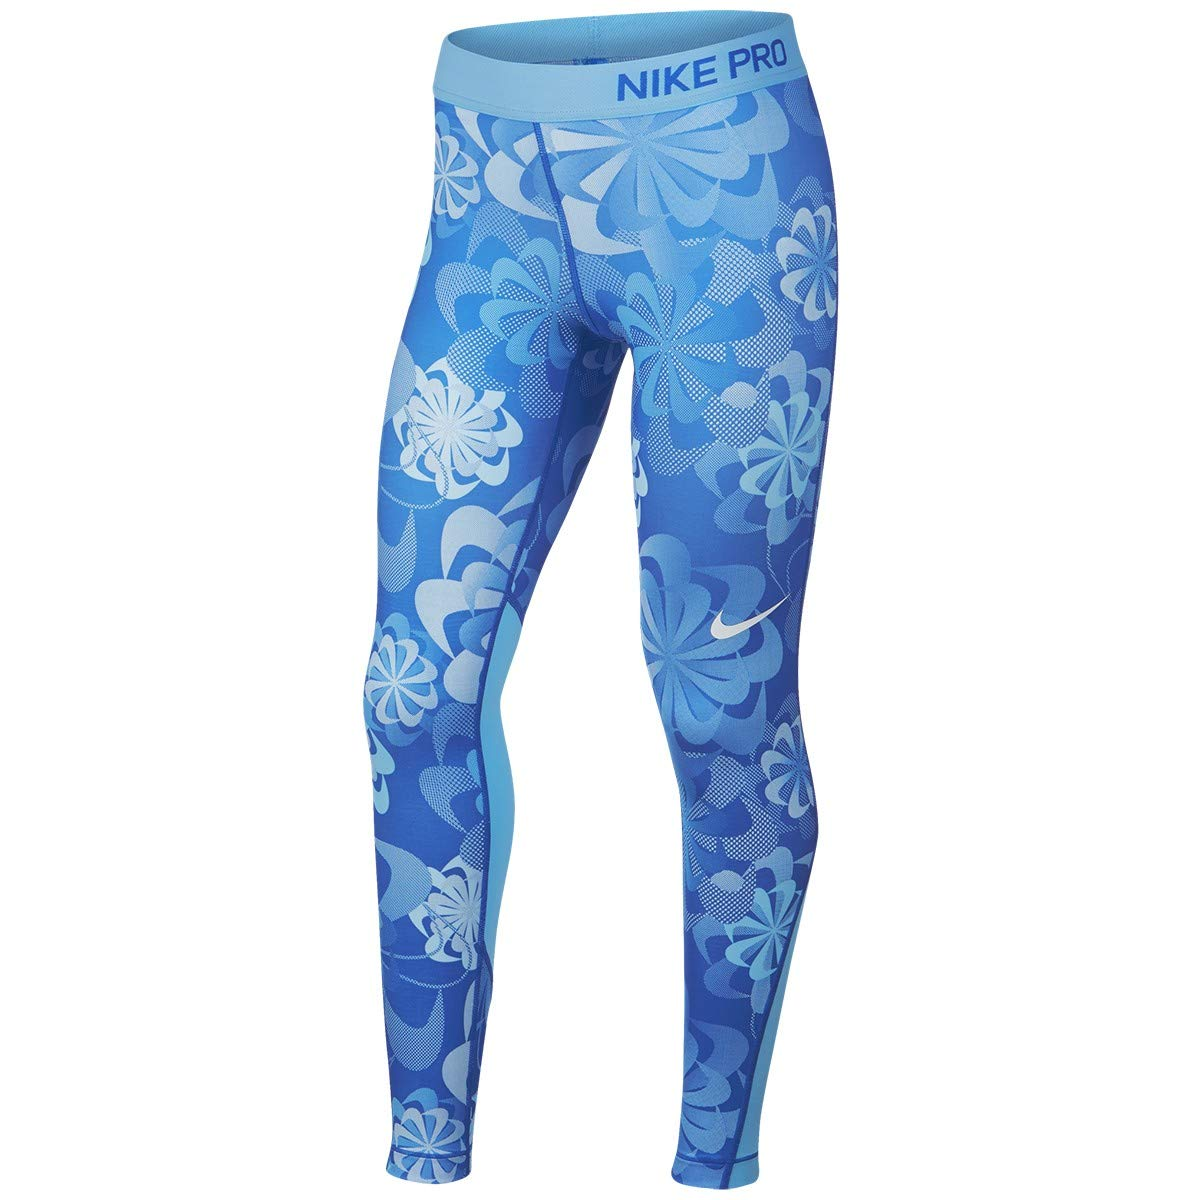 Nike Girl's Pro Printed Training Tights Small Blue by Nike